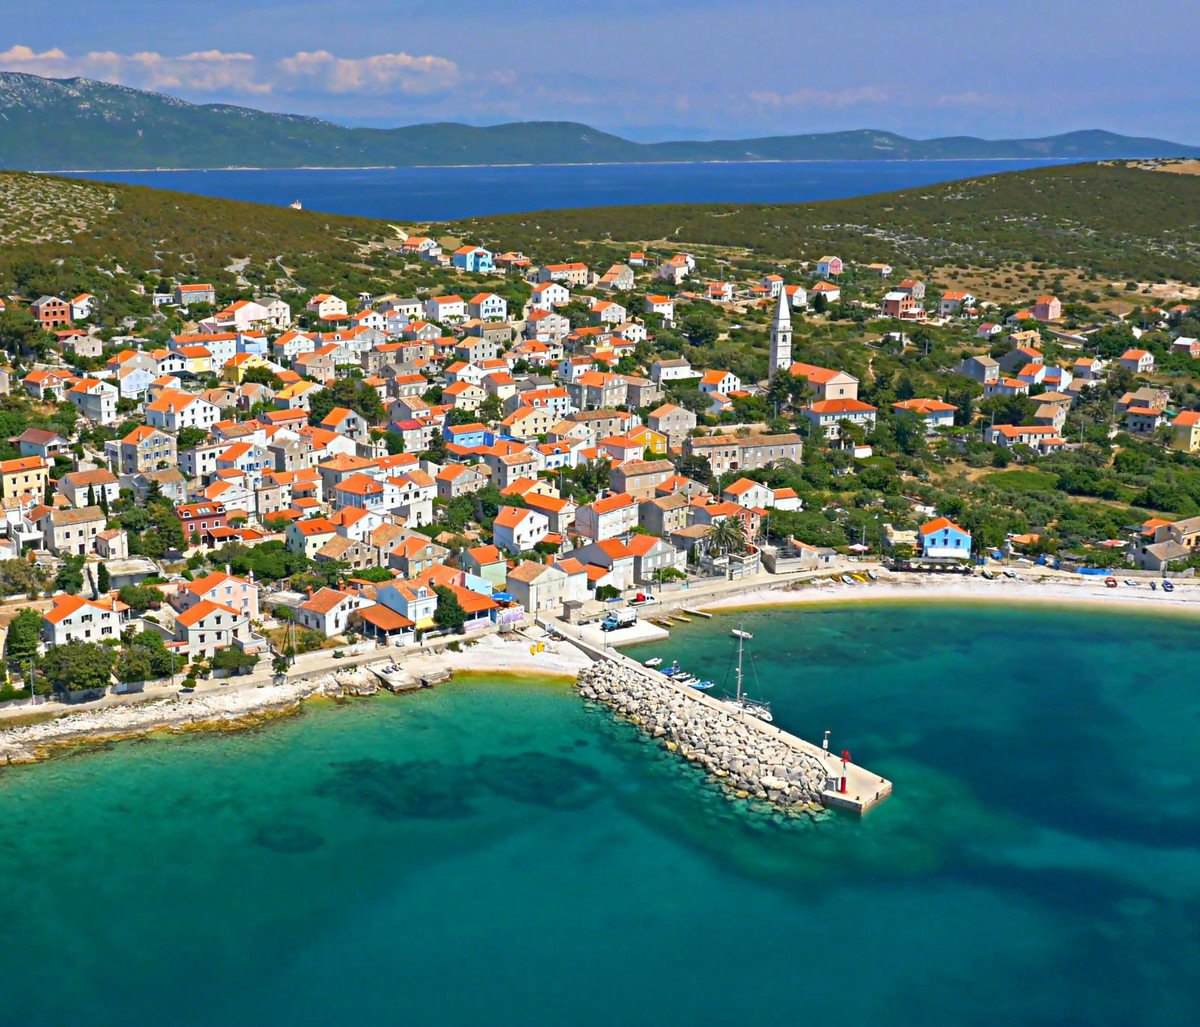 Unije  - a charming colourful village in the middle of Kvarner gulf